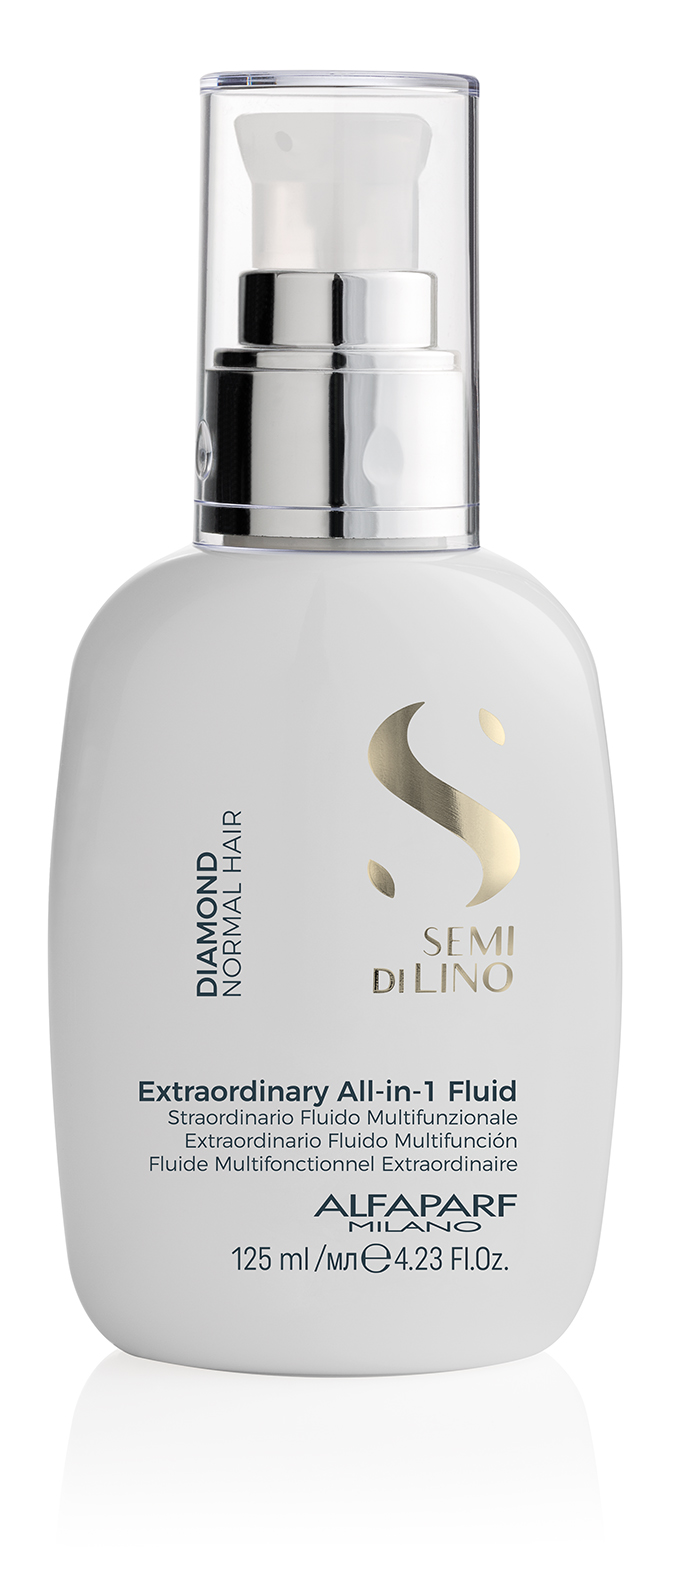 EXTRAORDINARY ALL-IN-1 FLUID    DESCRIPTION   Makes blow drying easier and amplifies shine Extreme radiance   FORMAT   Bottle 125ml